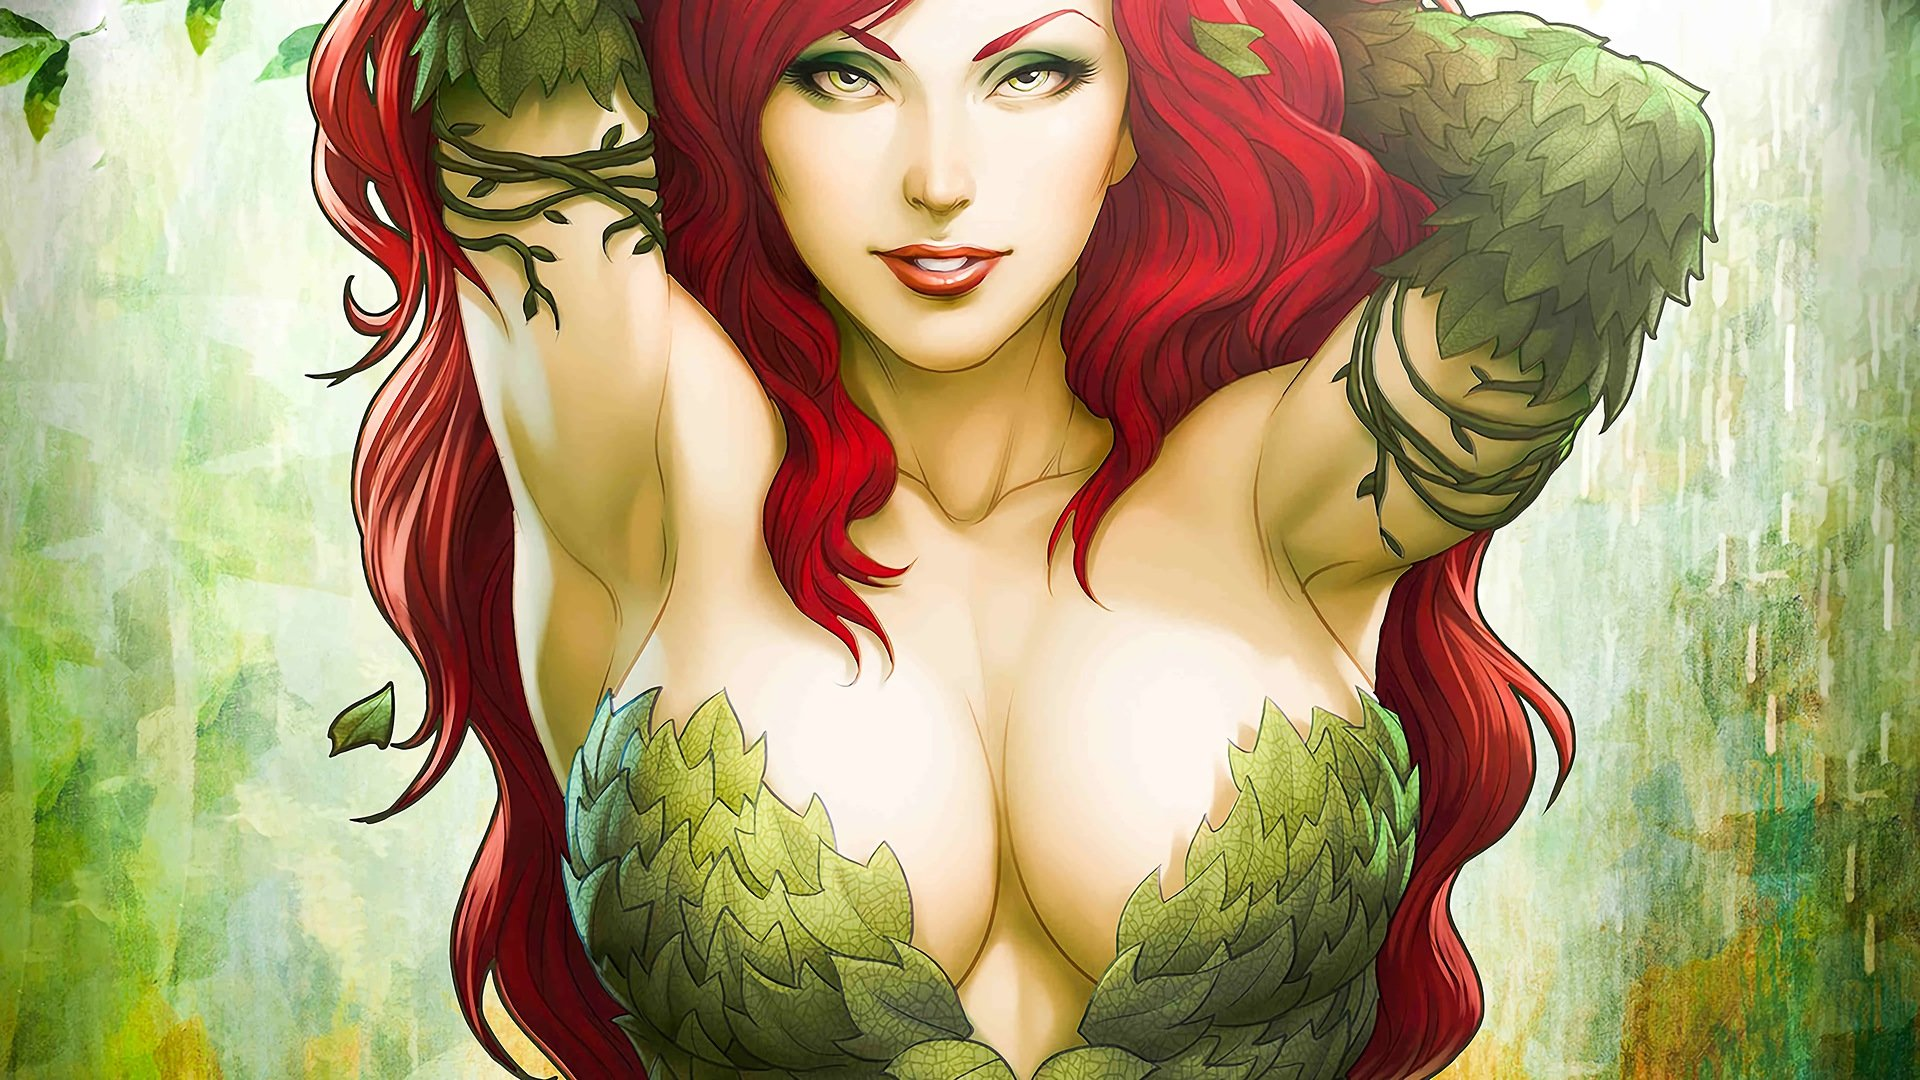 High resolution Poison Ivy hd 1920x1080 background ID:430633 for desktop